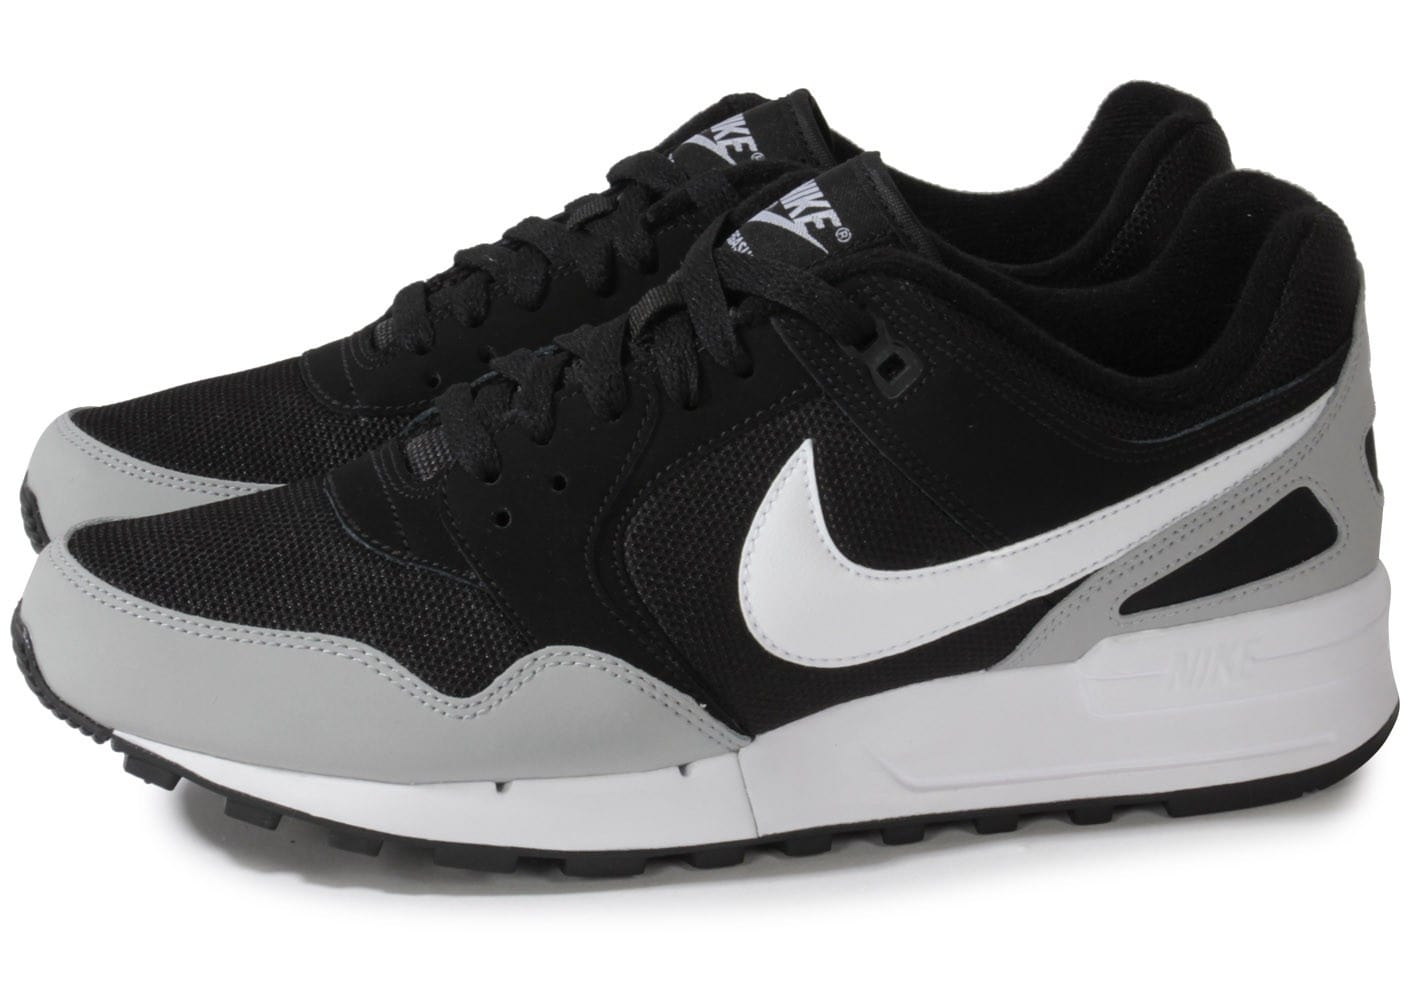 detailed look authentic quality exclusive range Nike Air Pegasus 89 Noire - Chaussures Baskets homme - Chausport